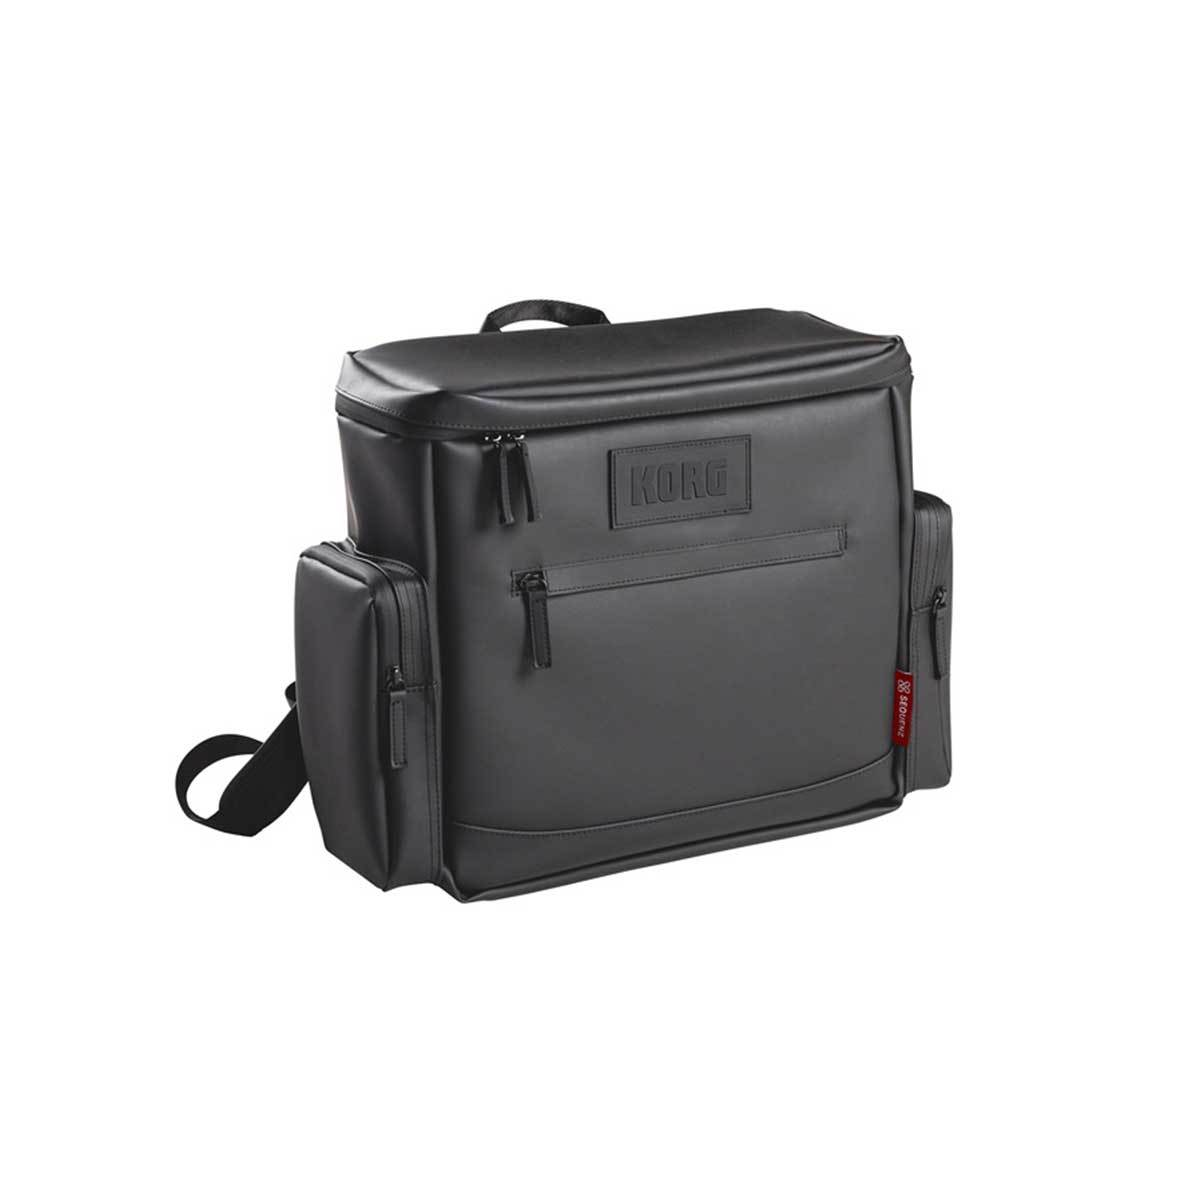 DJ Bags & Cases - Sequenz DJ Backpack Black